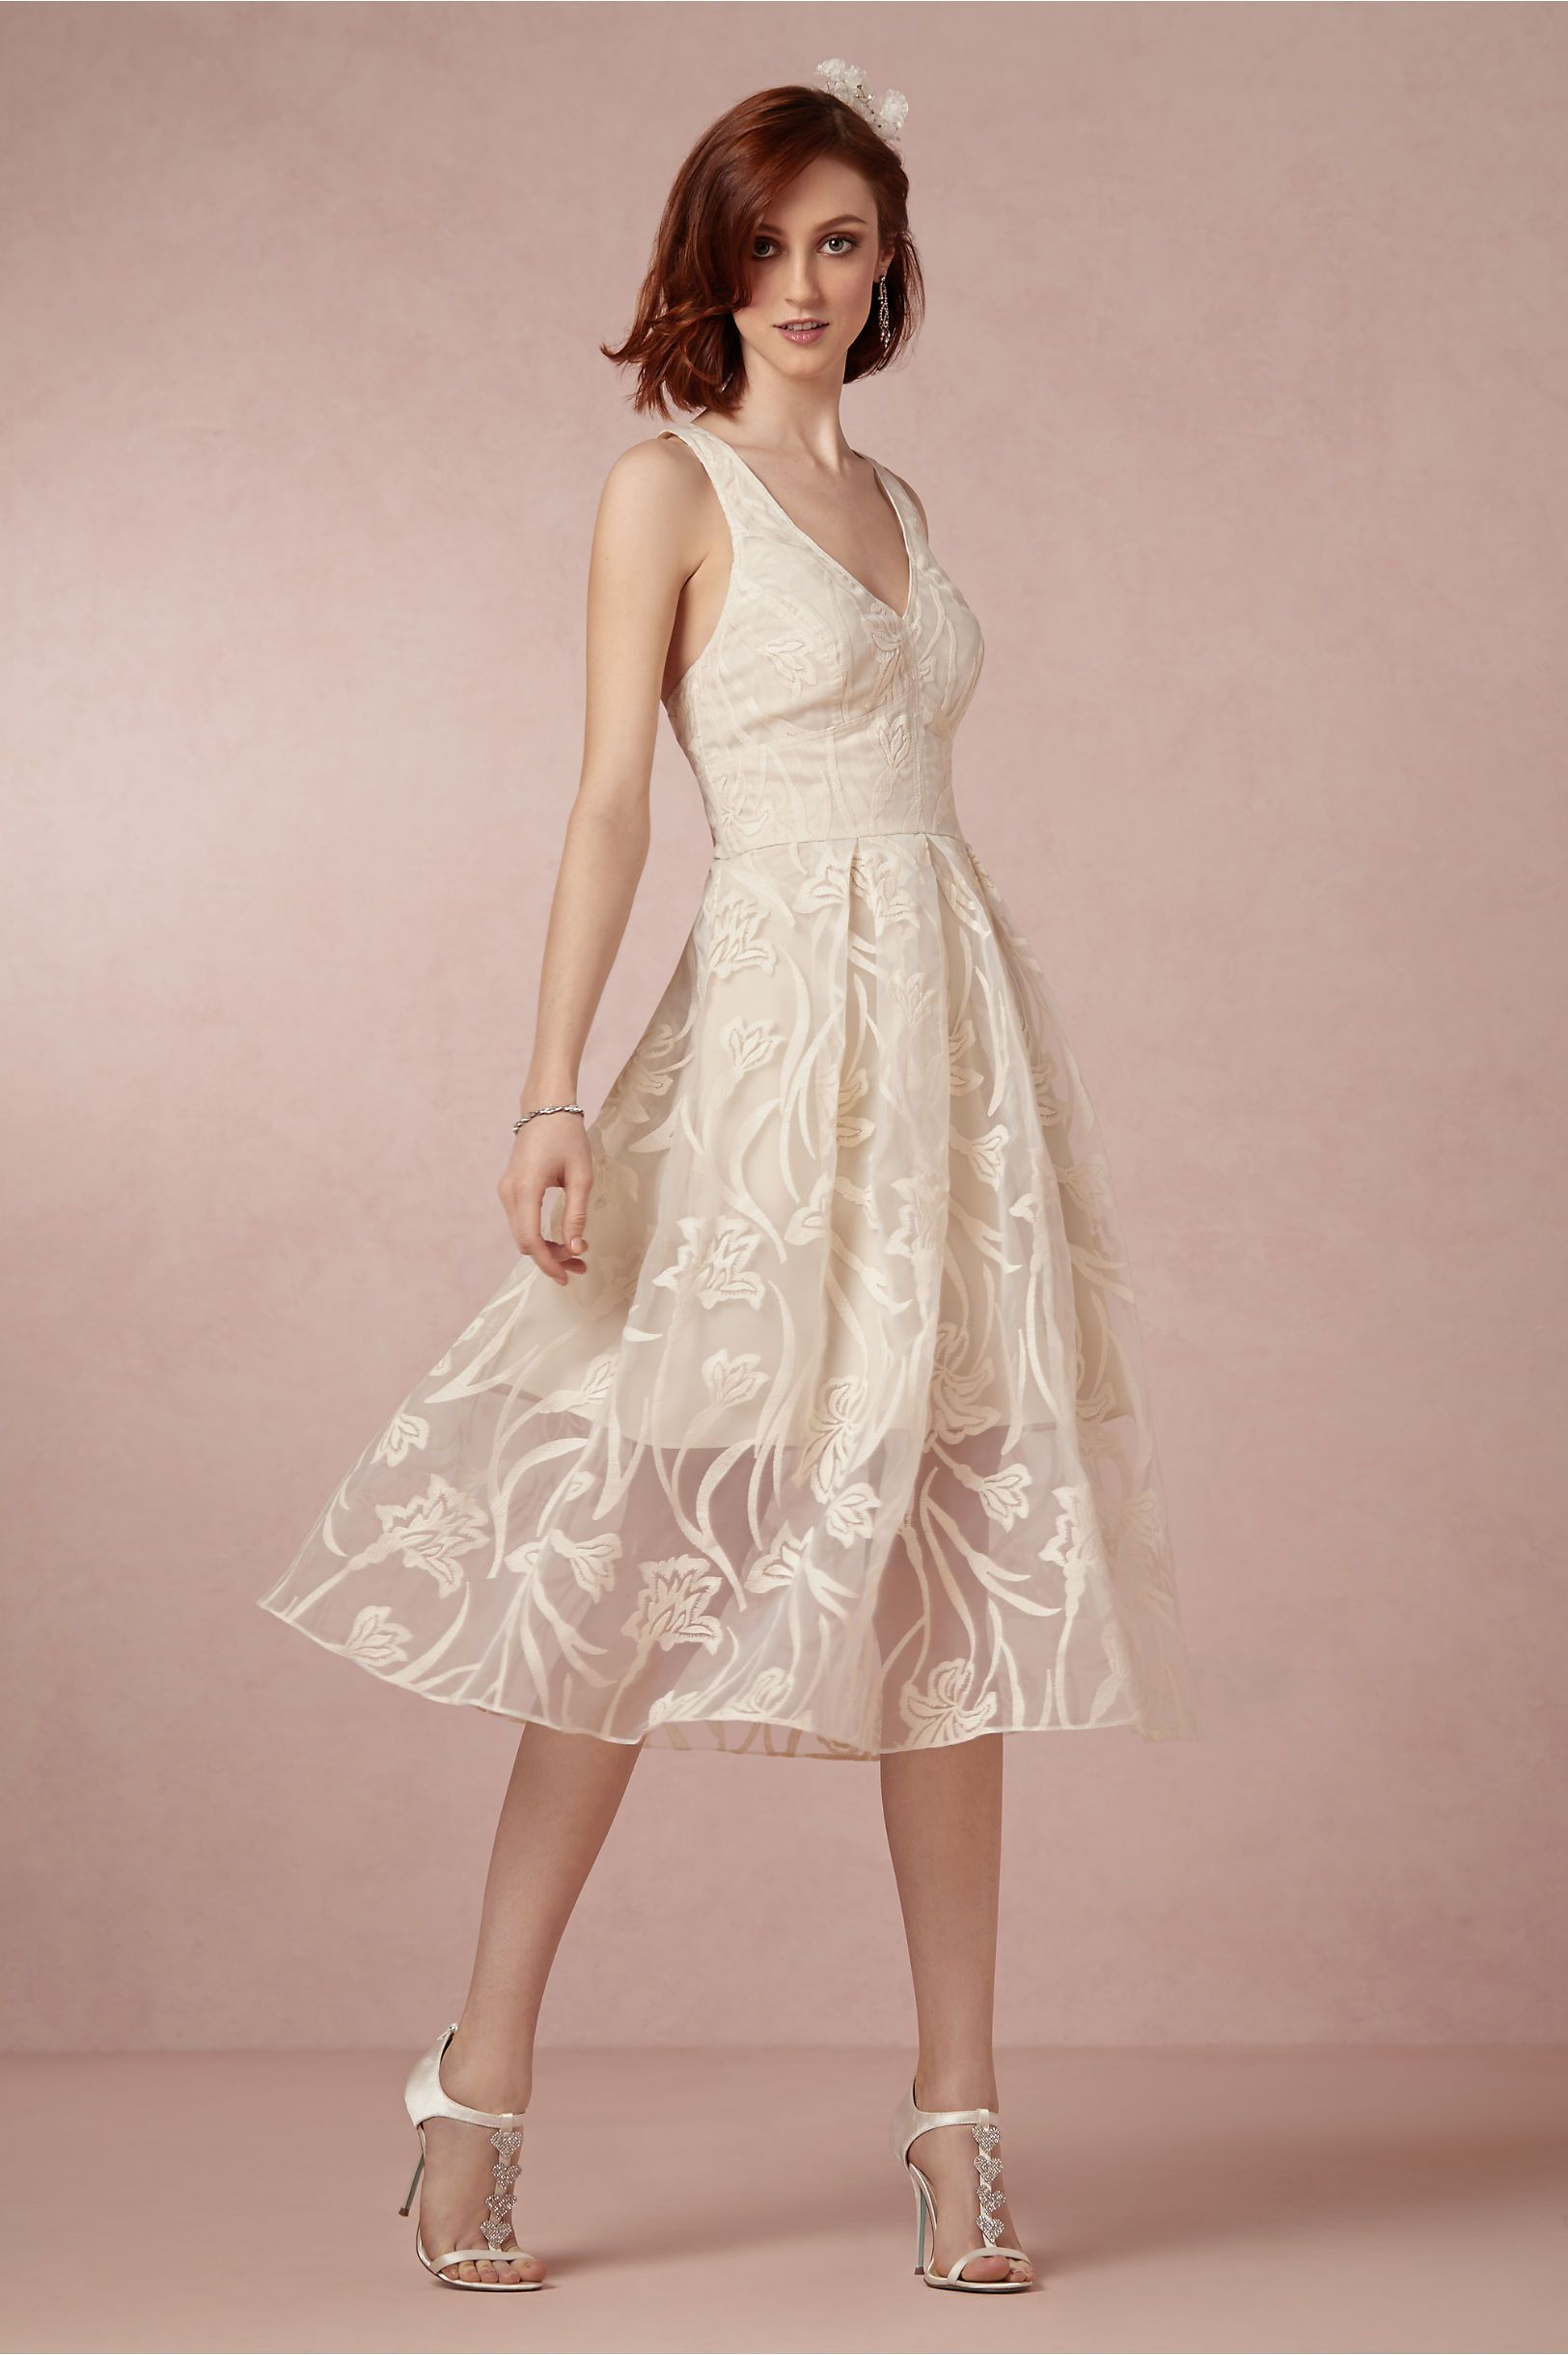 Fresh Blossoms Dress from BHLDN | dresses | Pinterest | Ropa modesta ...